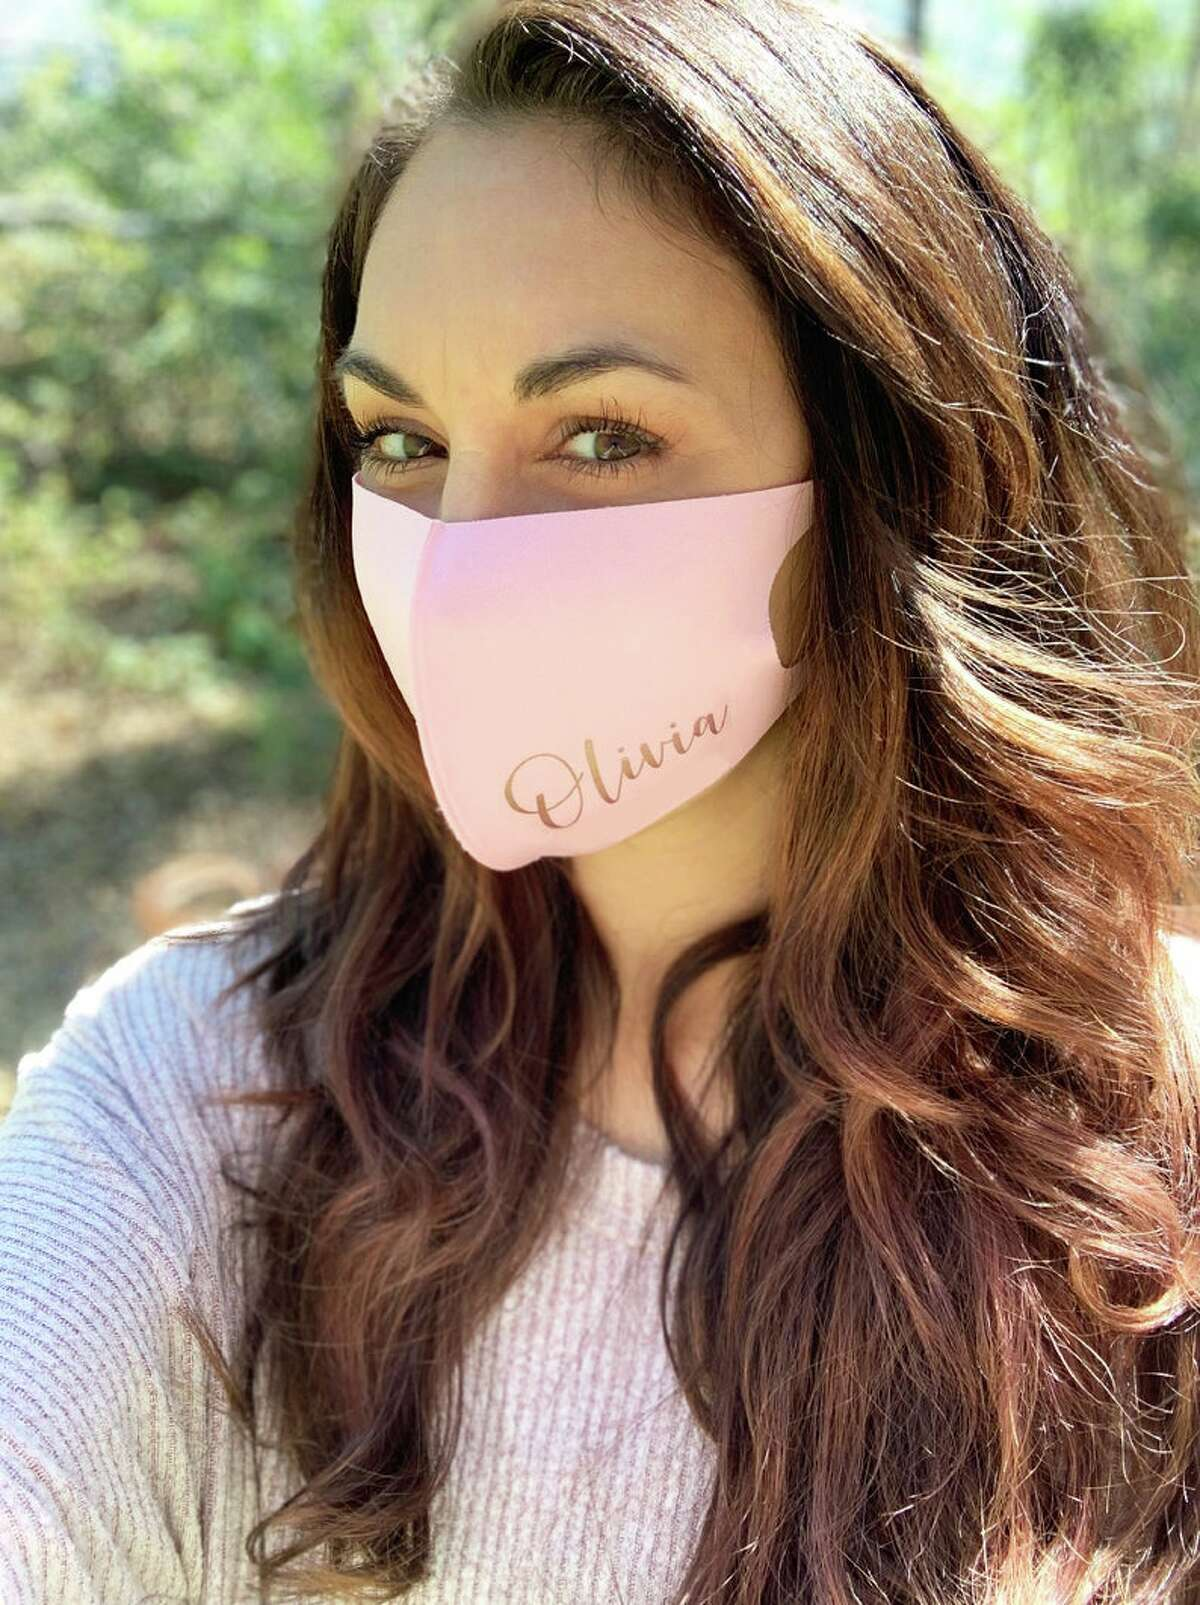 TheWhiteInviteGifts shop is here to offer chic and personalized face masks. With the option of pink or charcol masks, customers can customize it with their full name or monogram in a range of lettering. Price: starting at $16